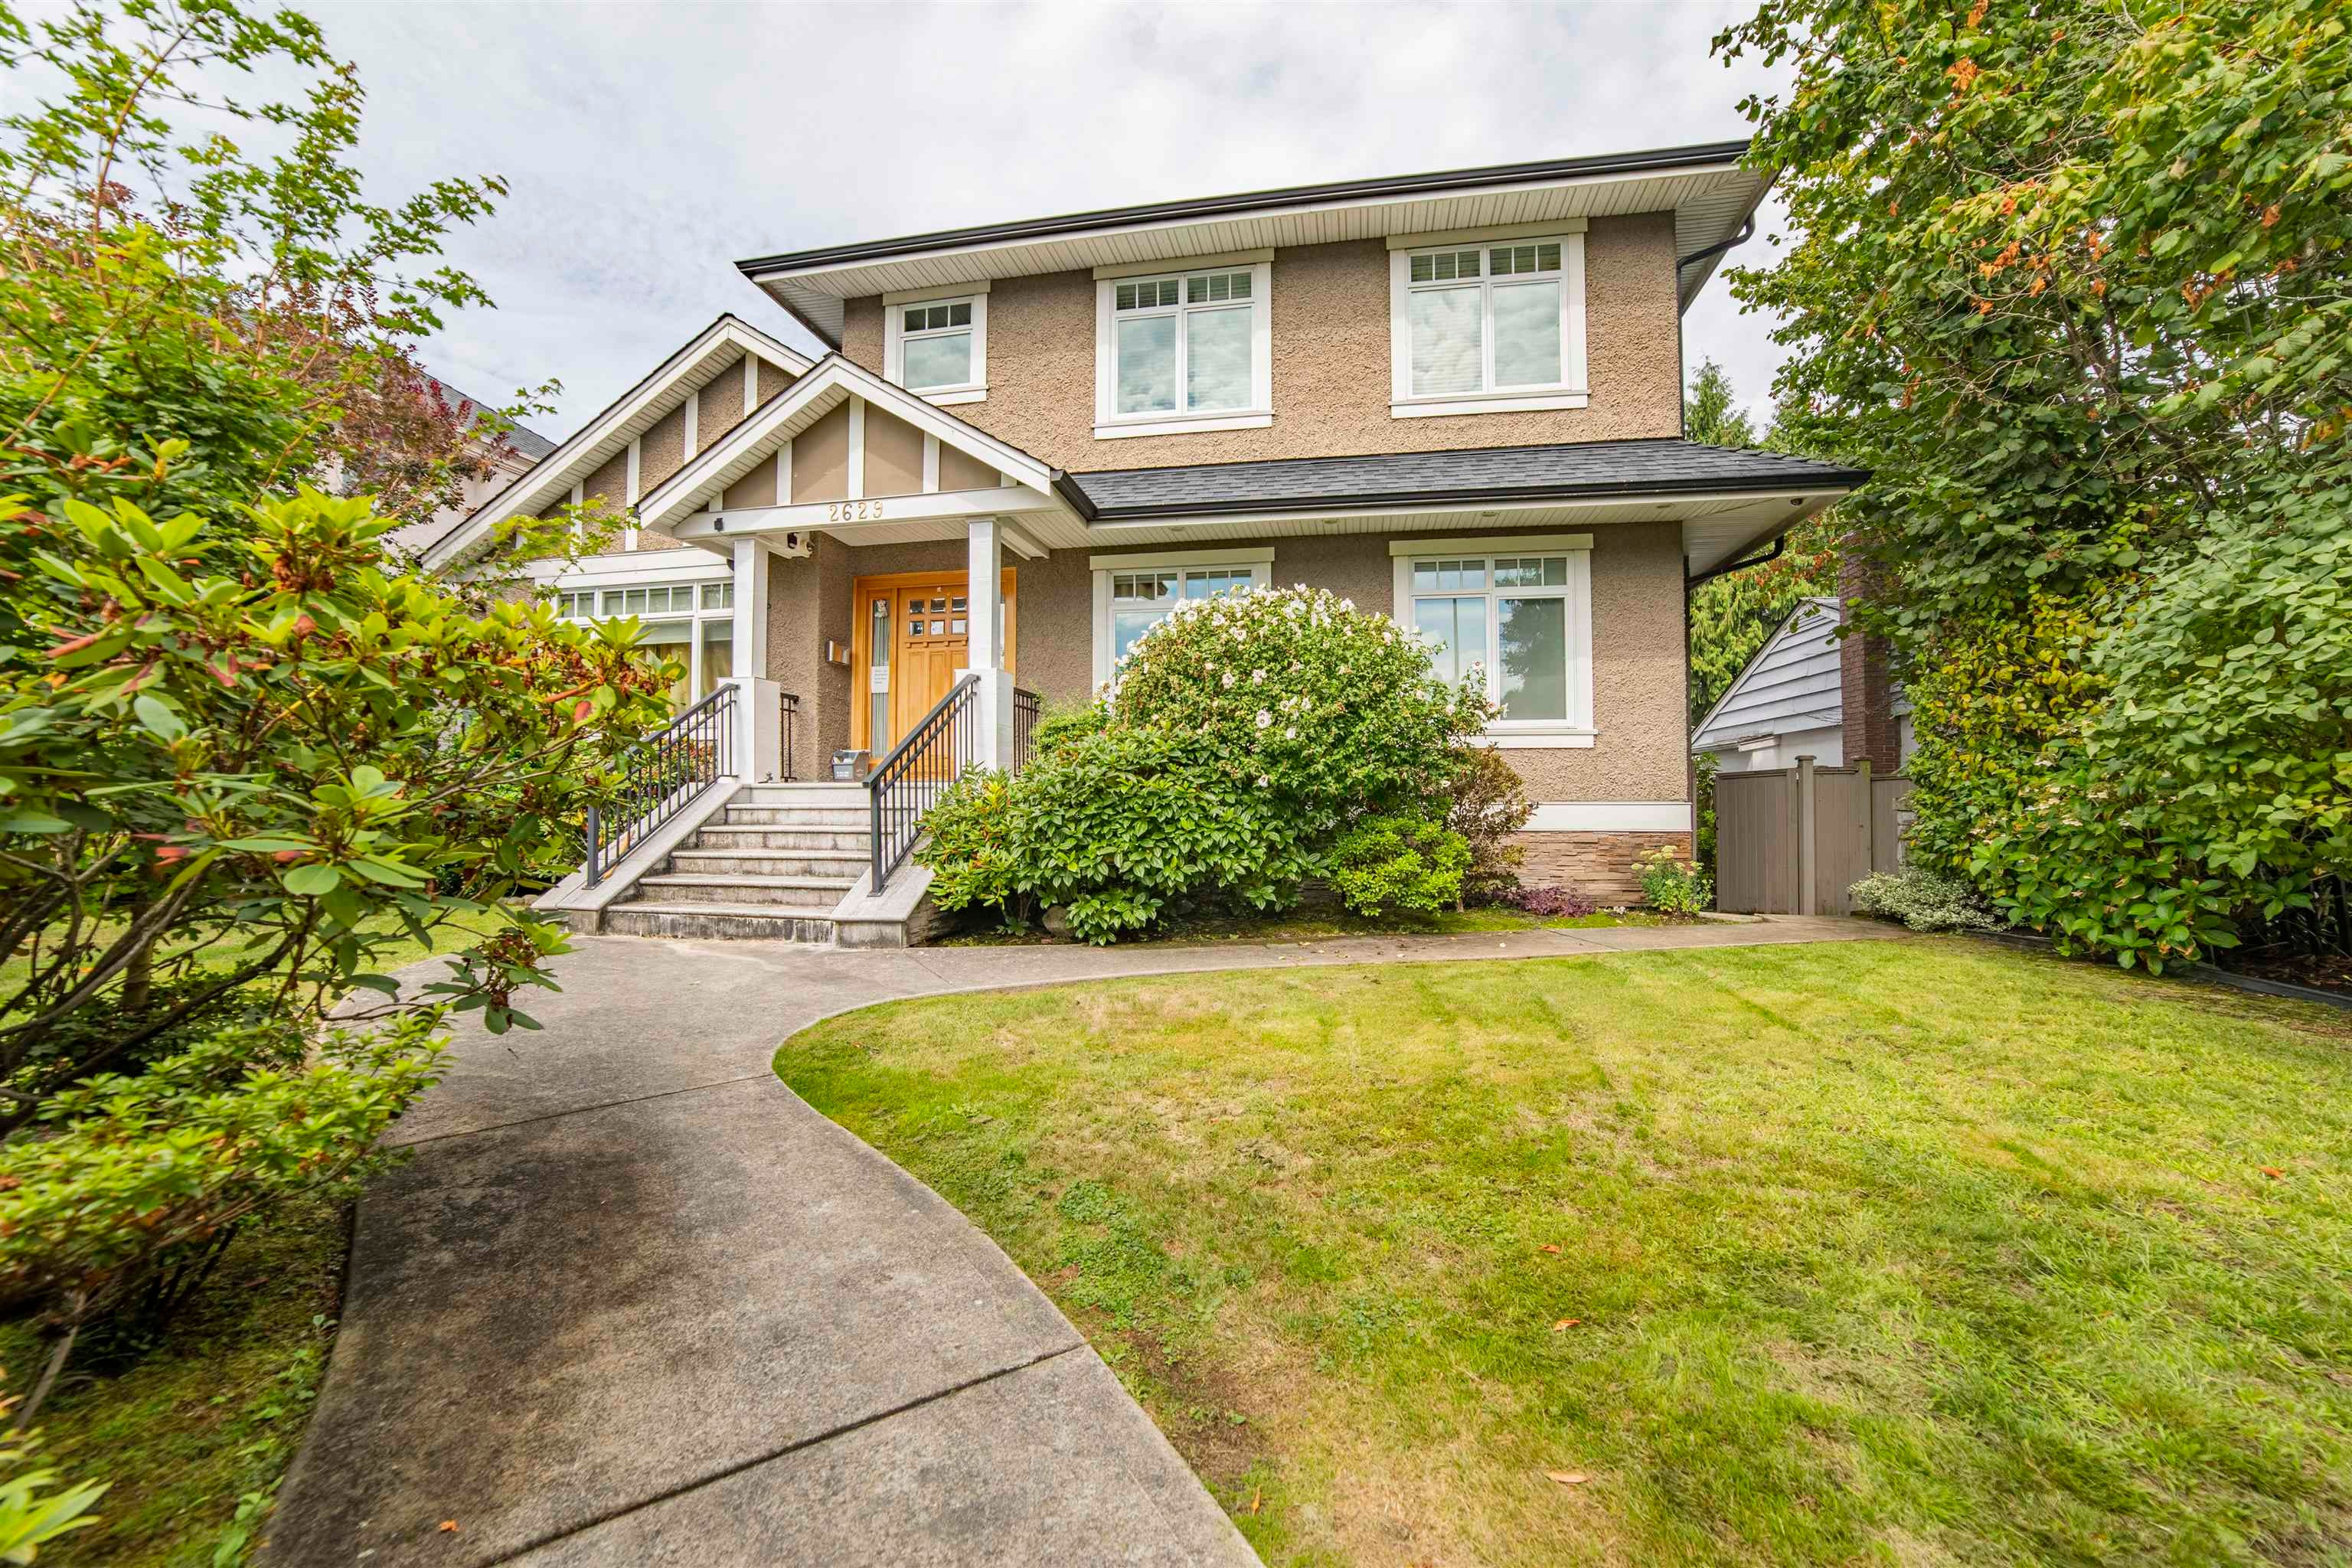 2629 MCBAIN AVENUE - Quilchena House/Single Family for sale, 6 Bedrooms (R2611701)